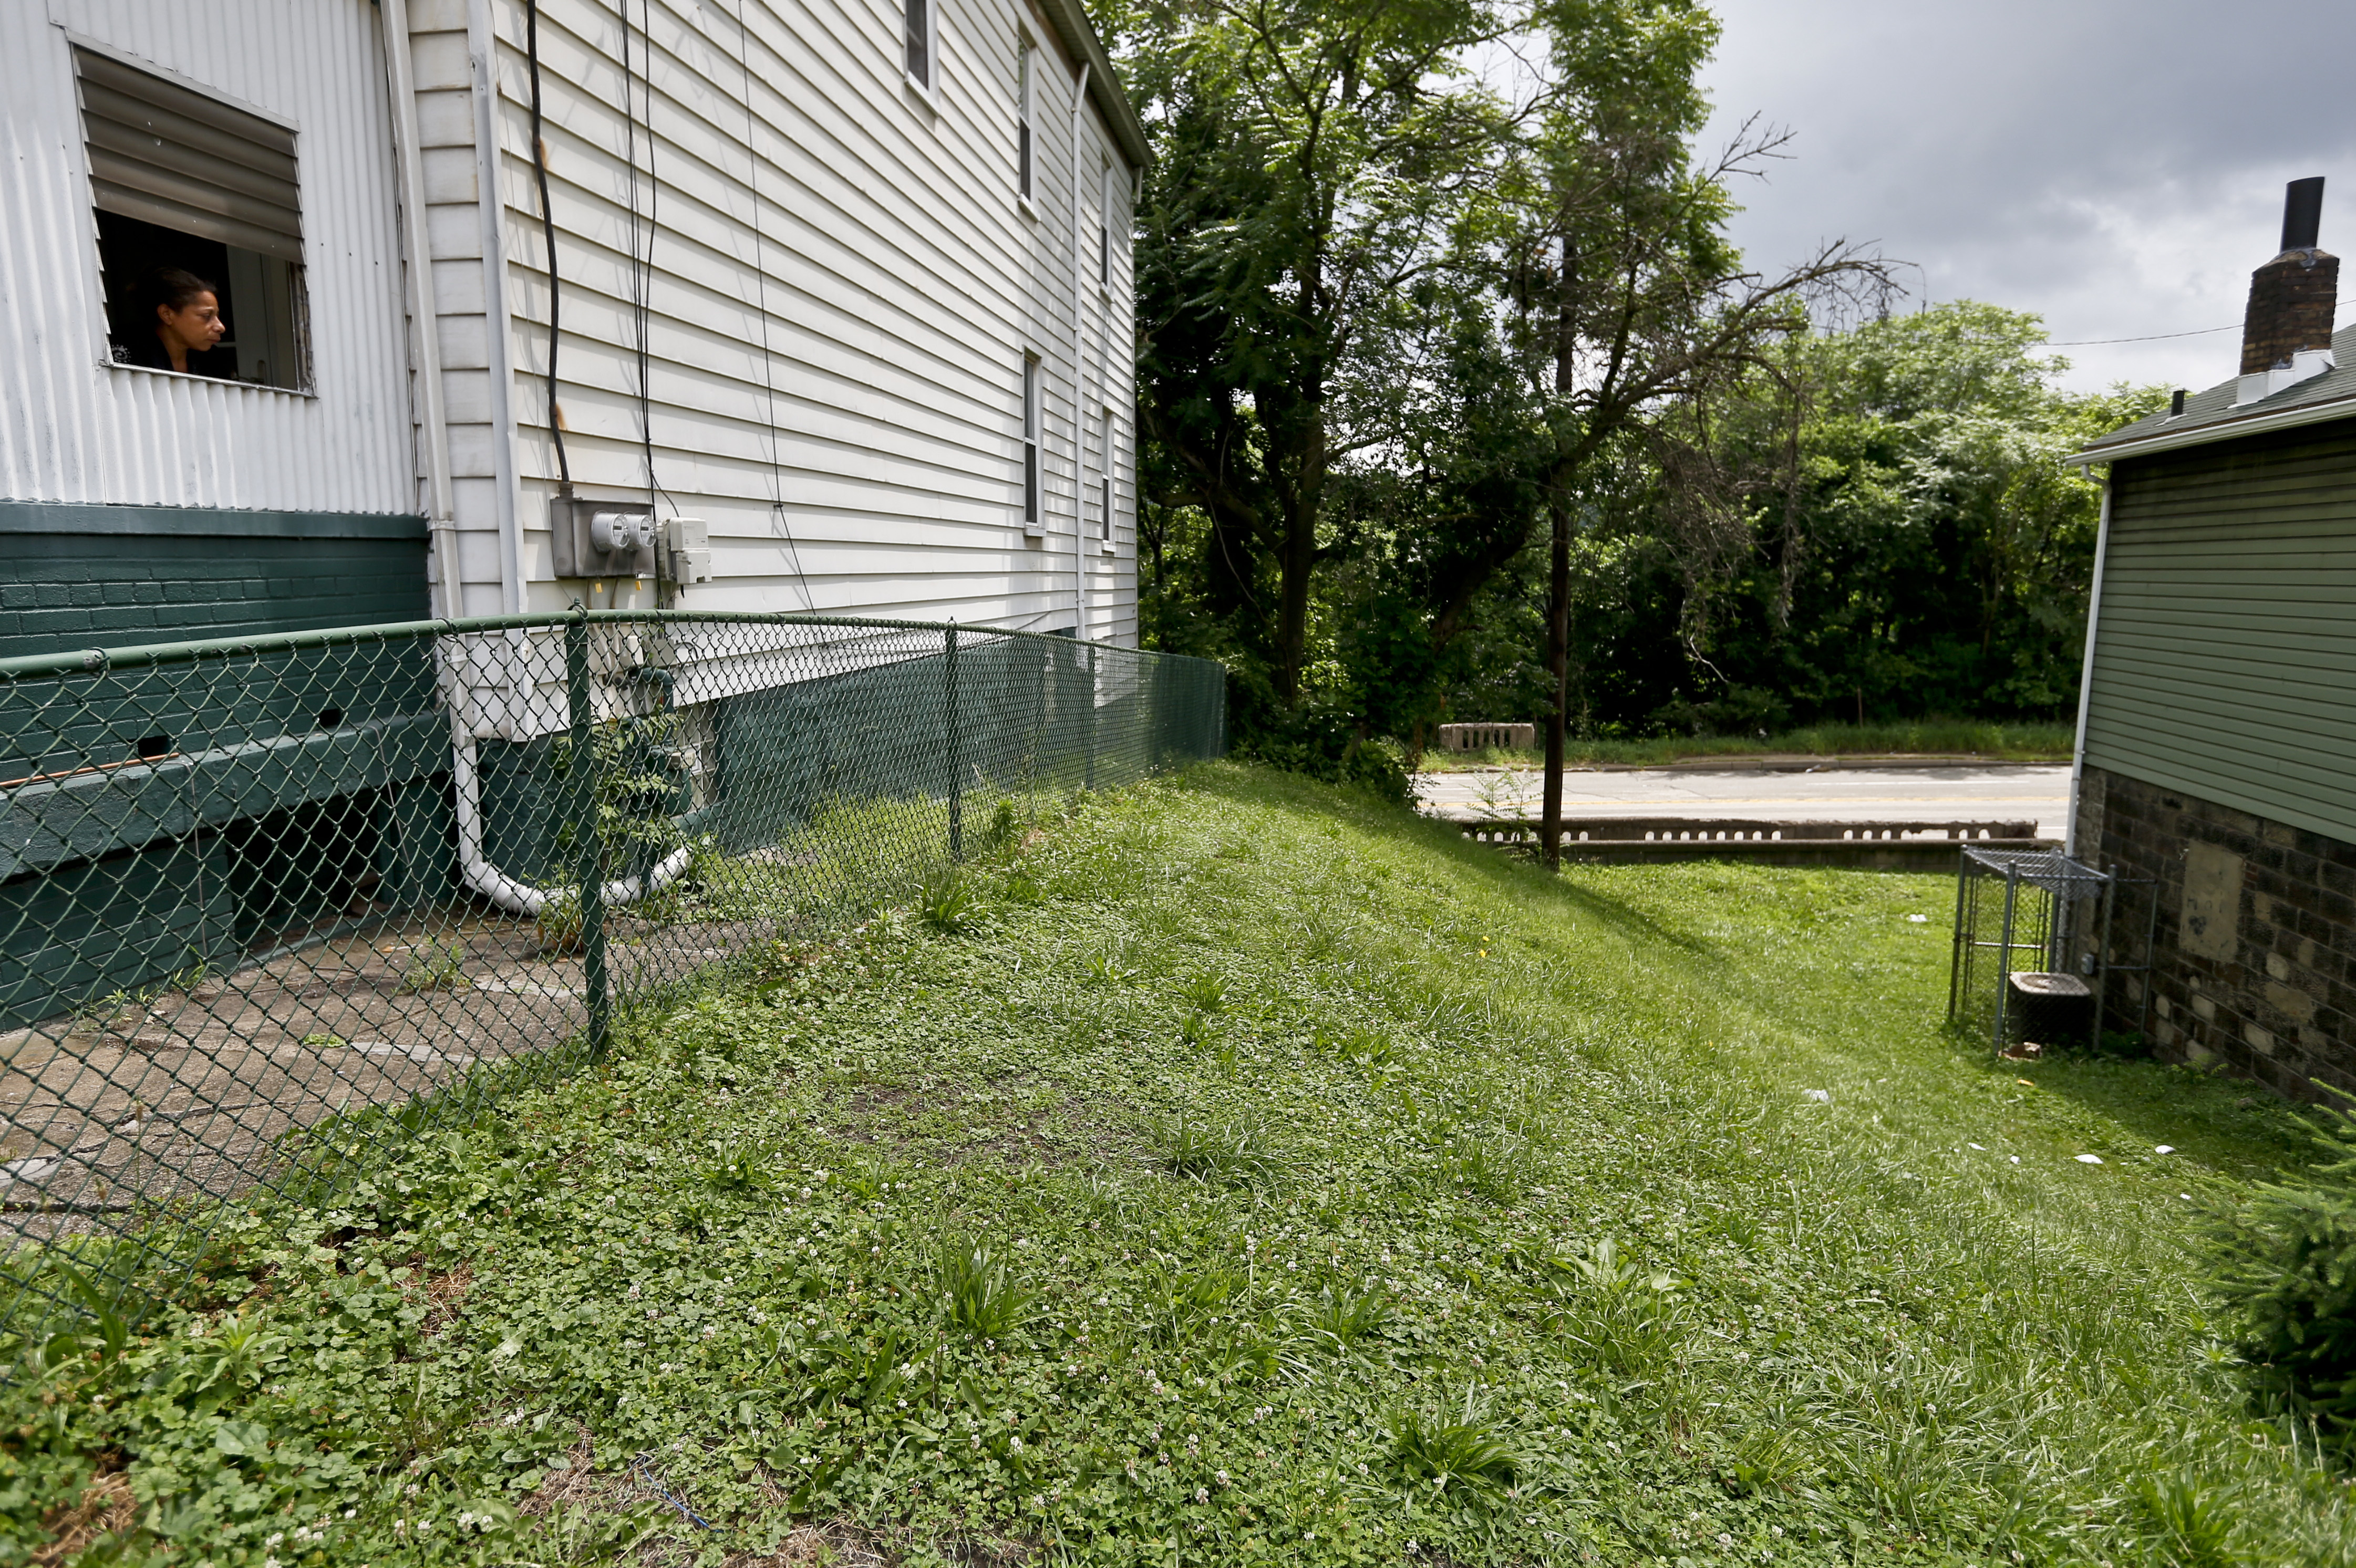 Debra Jones, left, looks over the lot on Wednesday, June 20, 2018, in East Pittsburgh, Pa., where she says she saw a police officer fatally shoot a 17-year-old boy just seconds after he fled from a traffic stop during a confrontation late the night before. (AP Photo/Keith Srakocic)